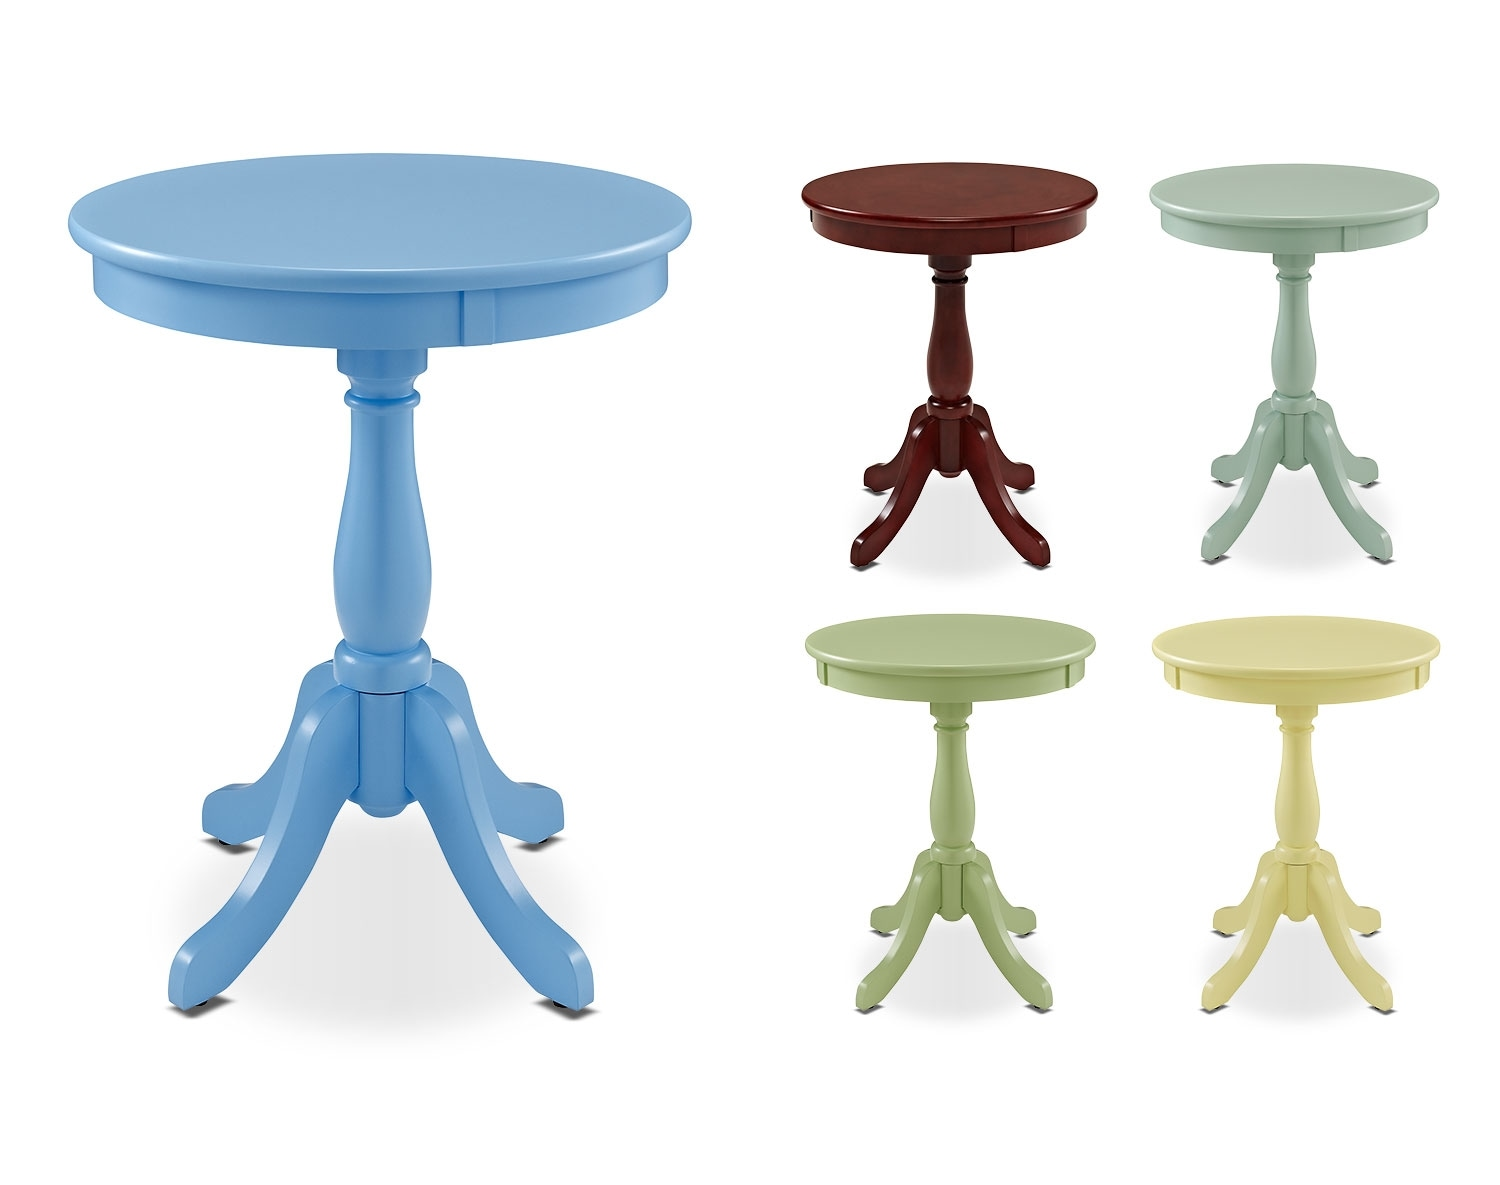 The Aron Side Table Collection